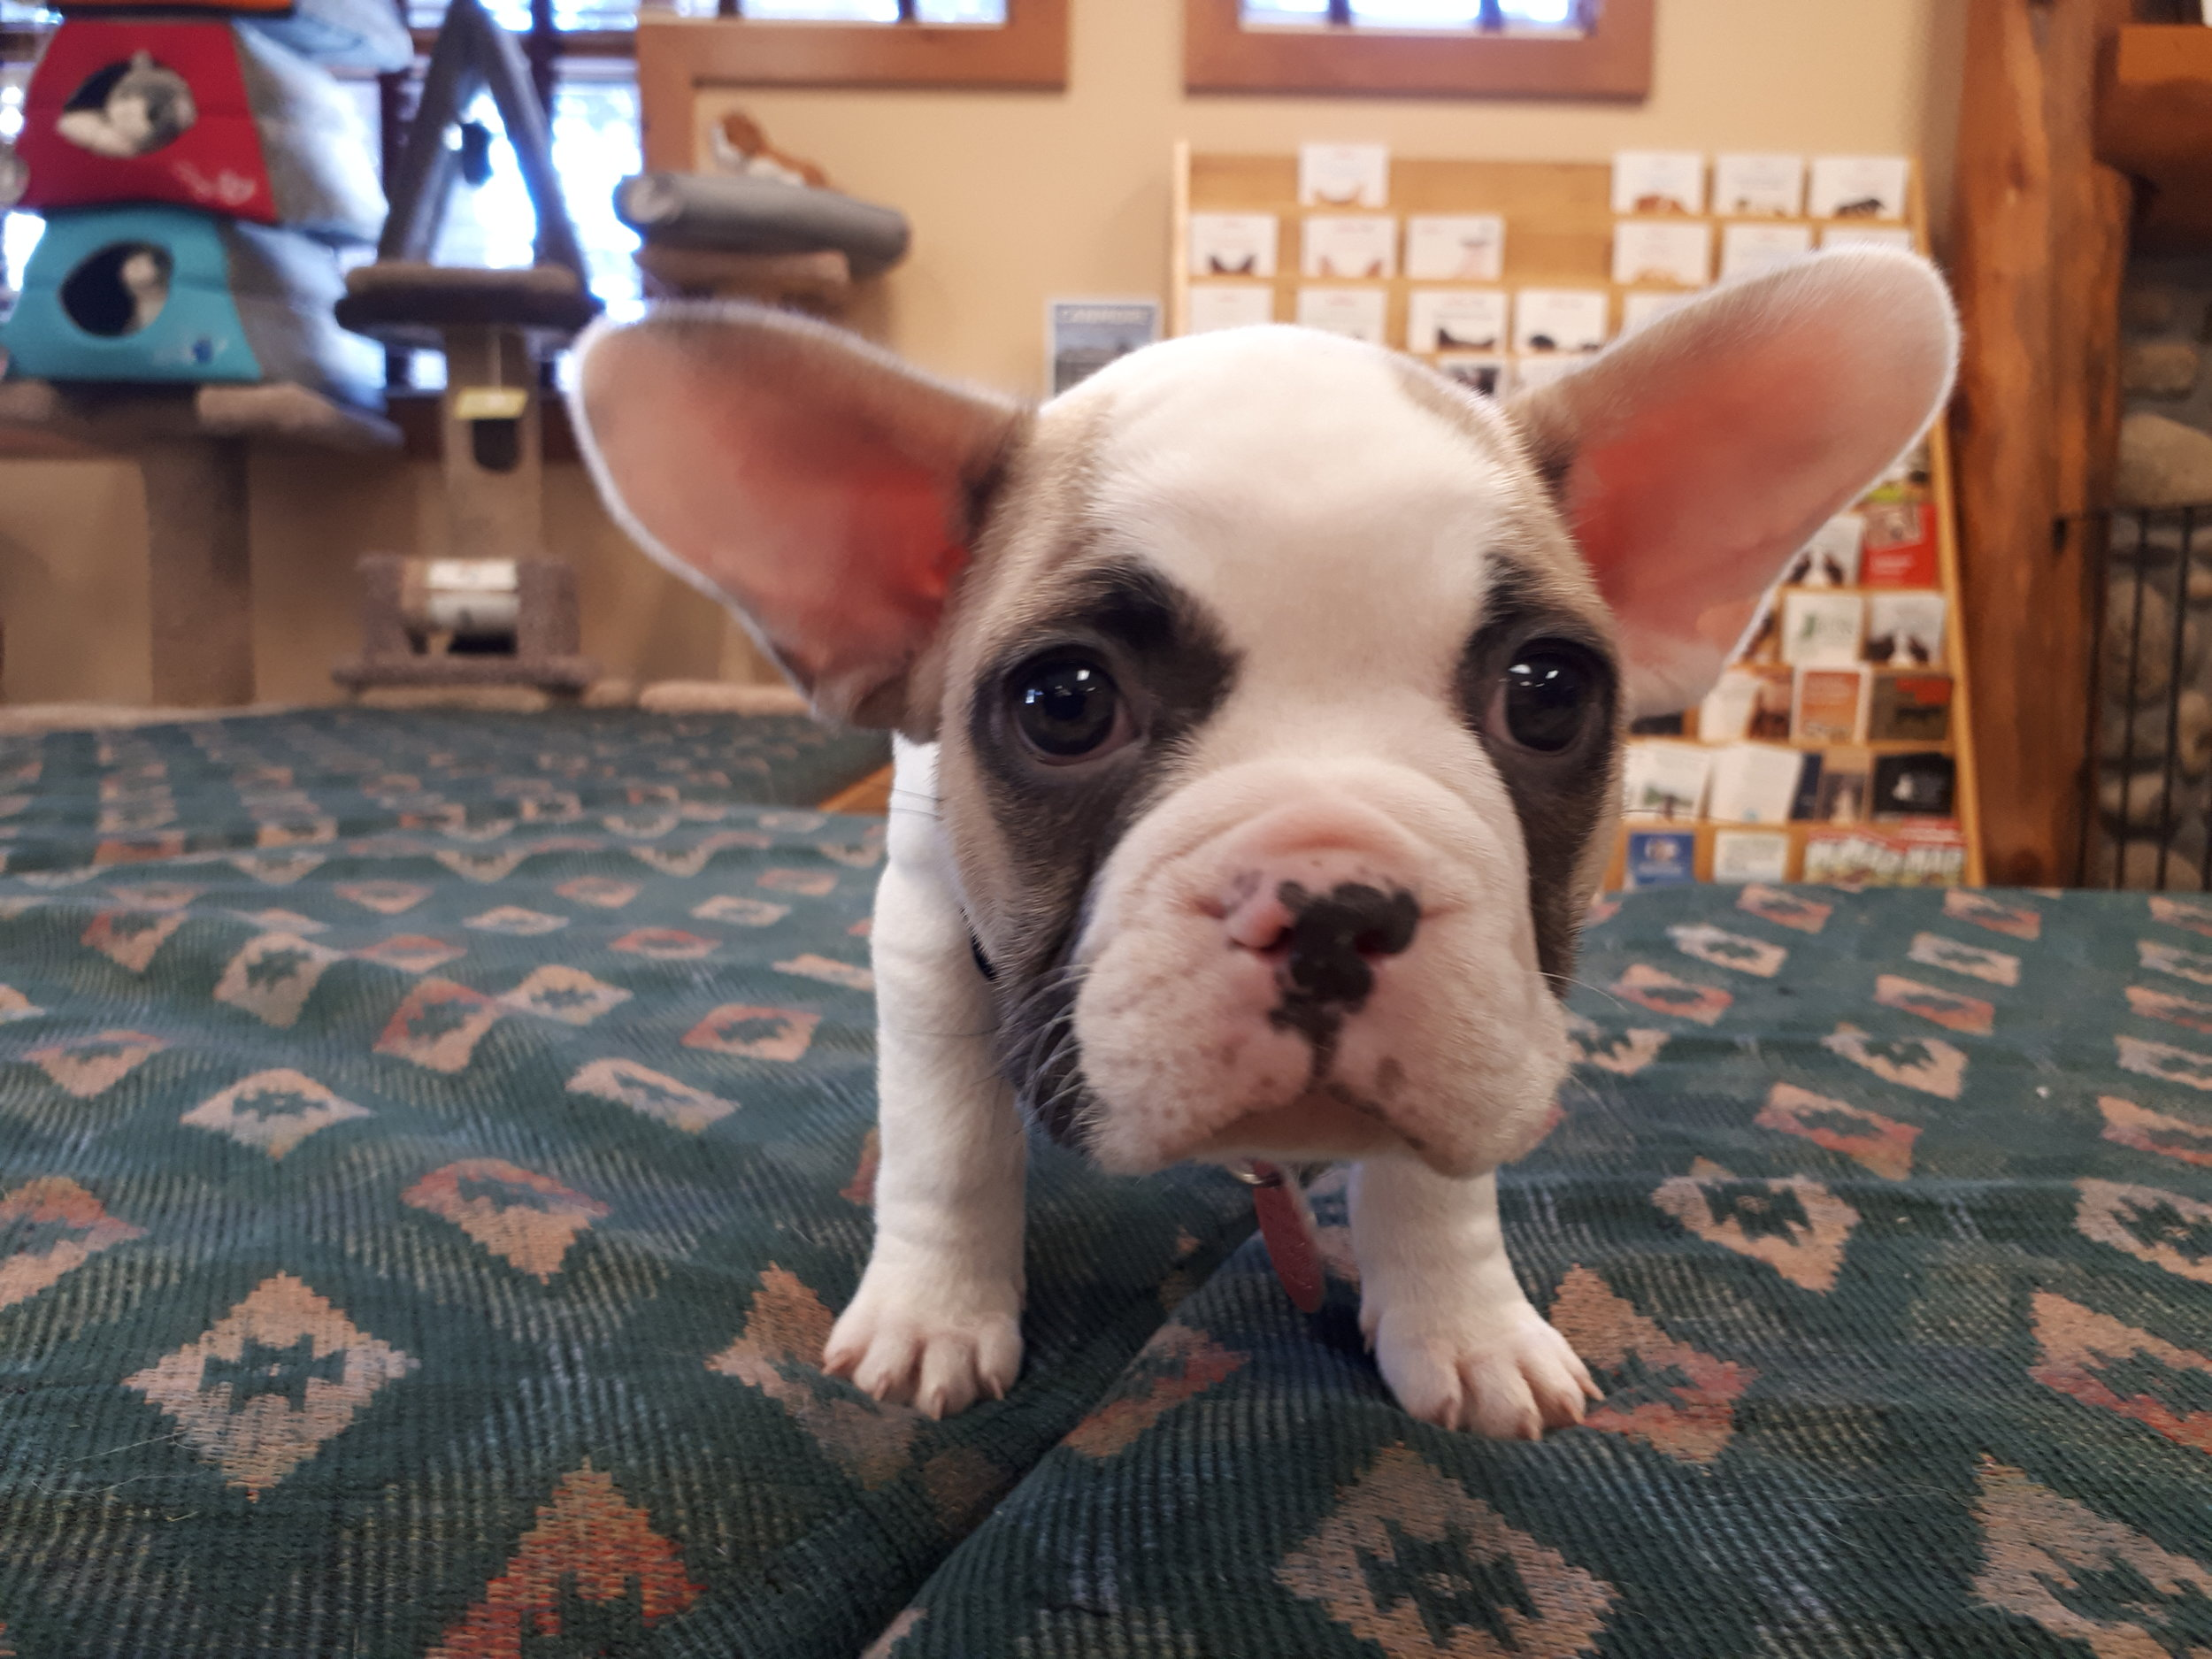 Meet Harley!  A sweet French Bulldog puppy new to the valley.